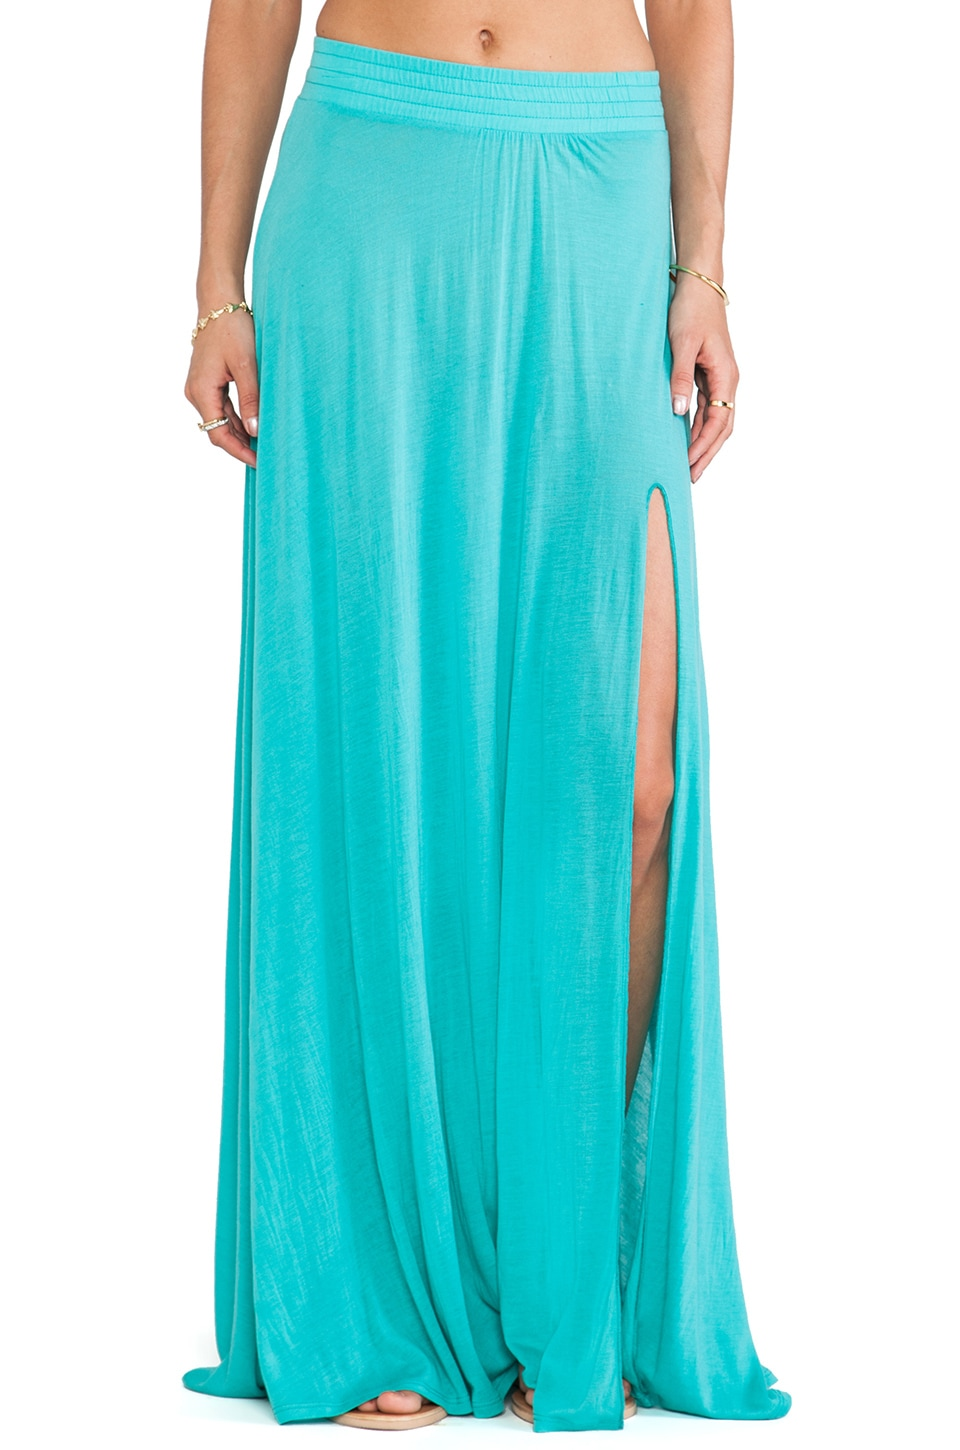 Blue Life Festival Maxi Skirt in Mint